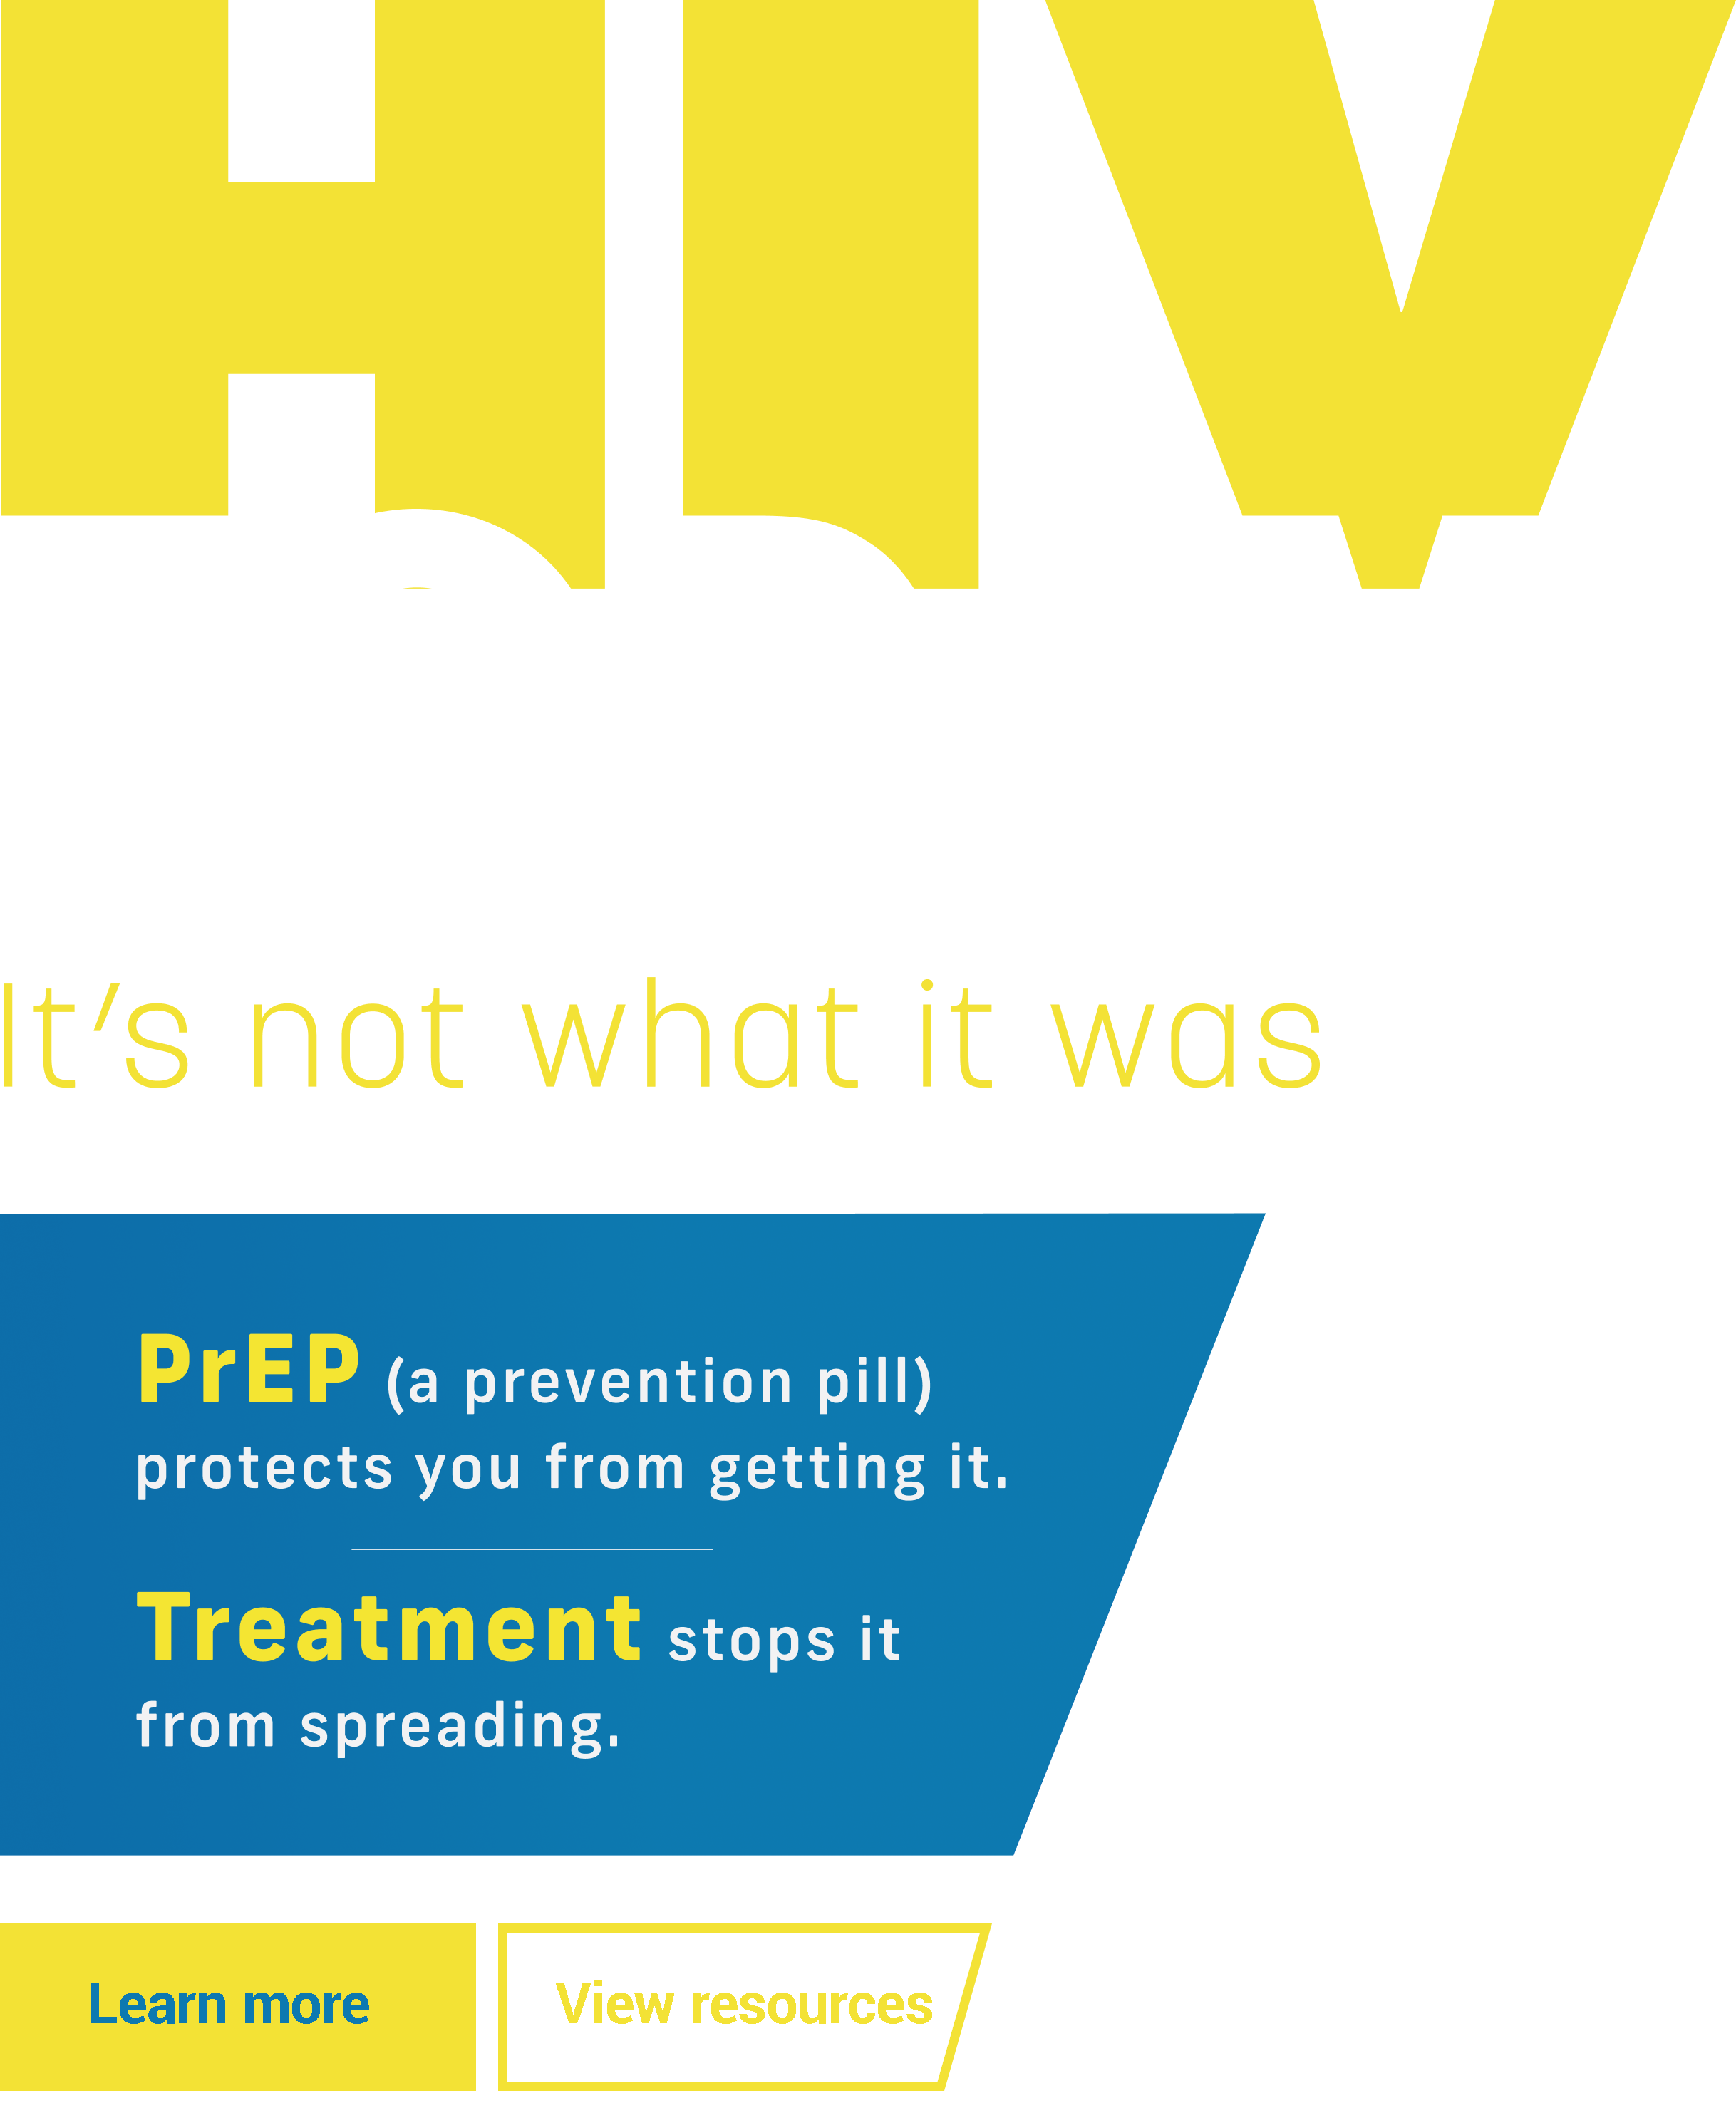 PrEP (a prevention pill) protects you from getting HIV., Treatment stops it from spreading.